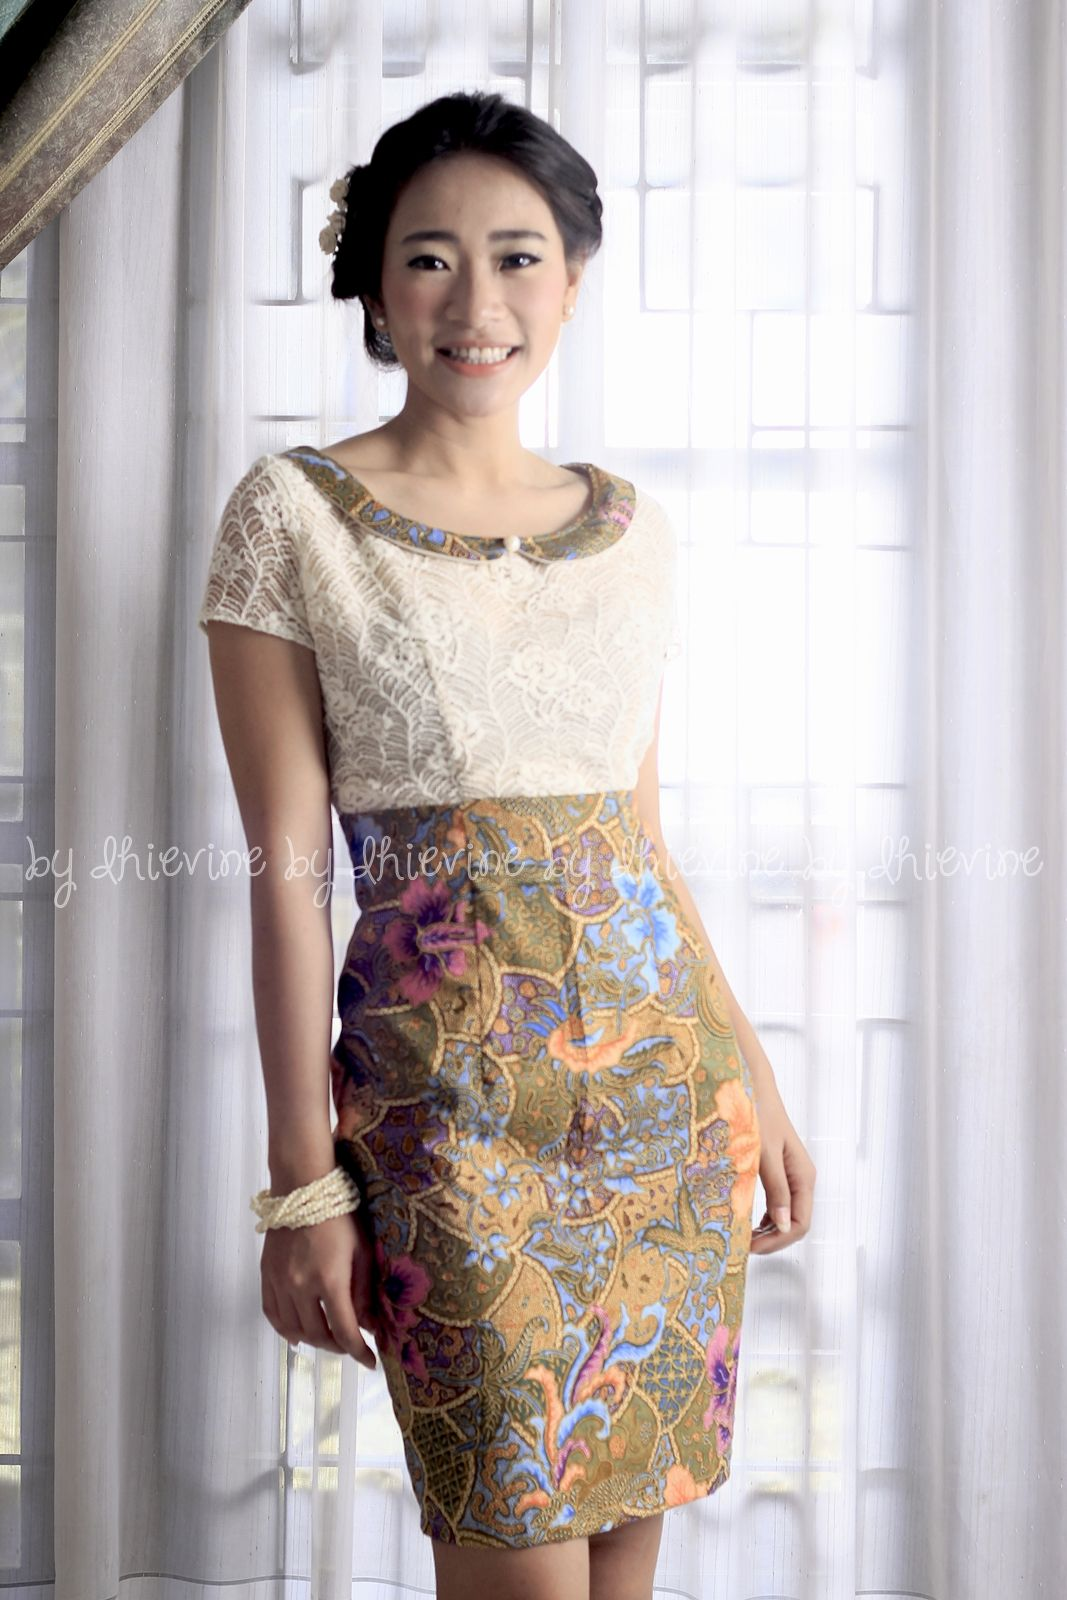 Batik Dress | Dress Kebaya | Lace dress |Menursari Dress | DhieVine | Redefine You